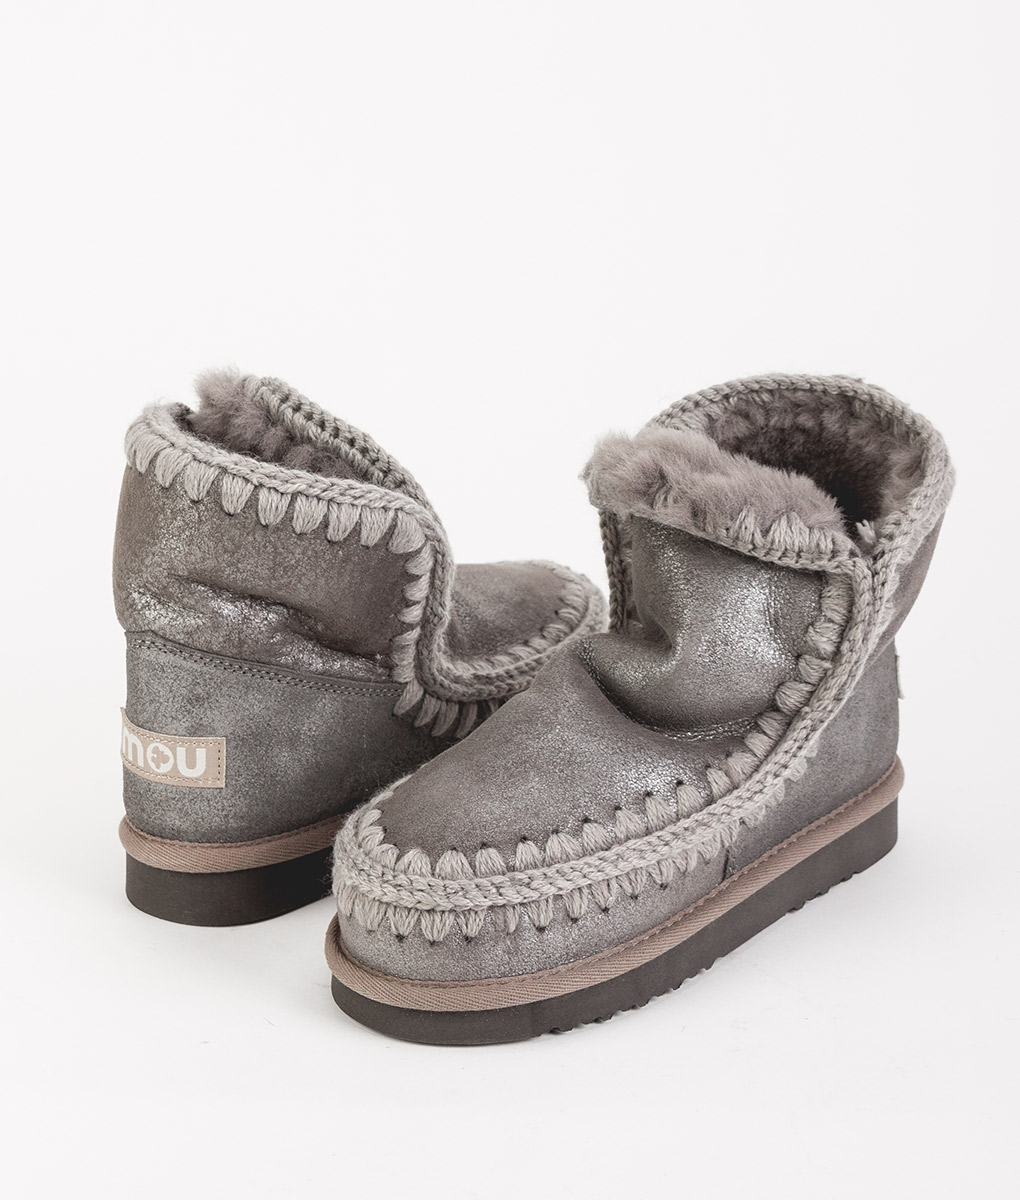 MOU Women Ankle Boots ESKIMO 18, Grey 234.99 1